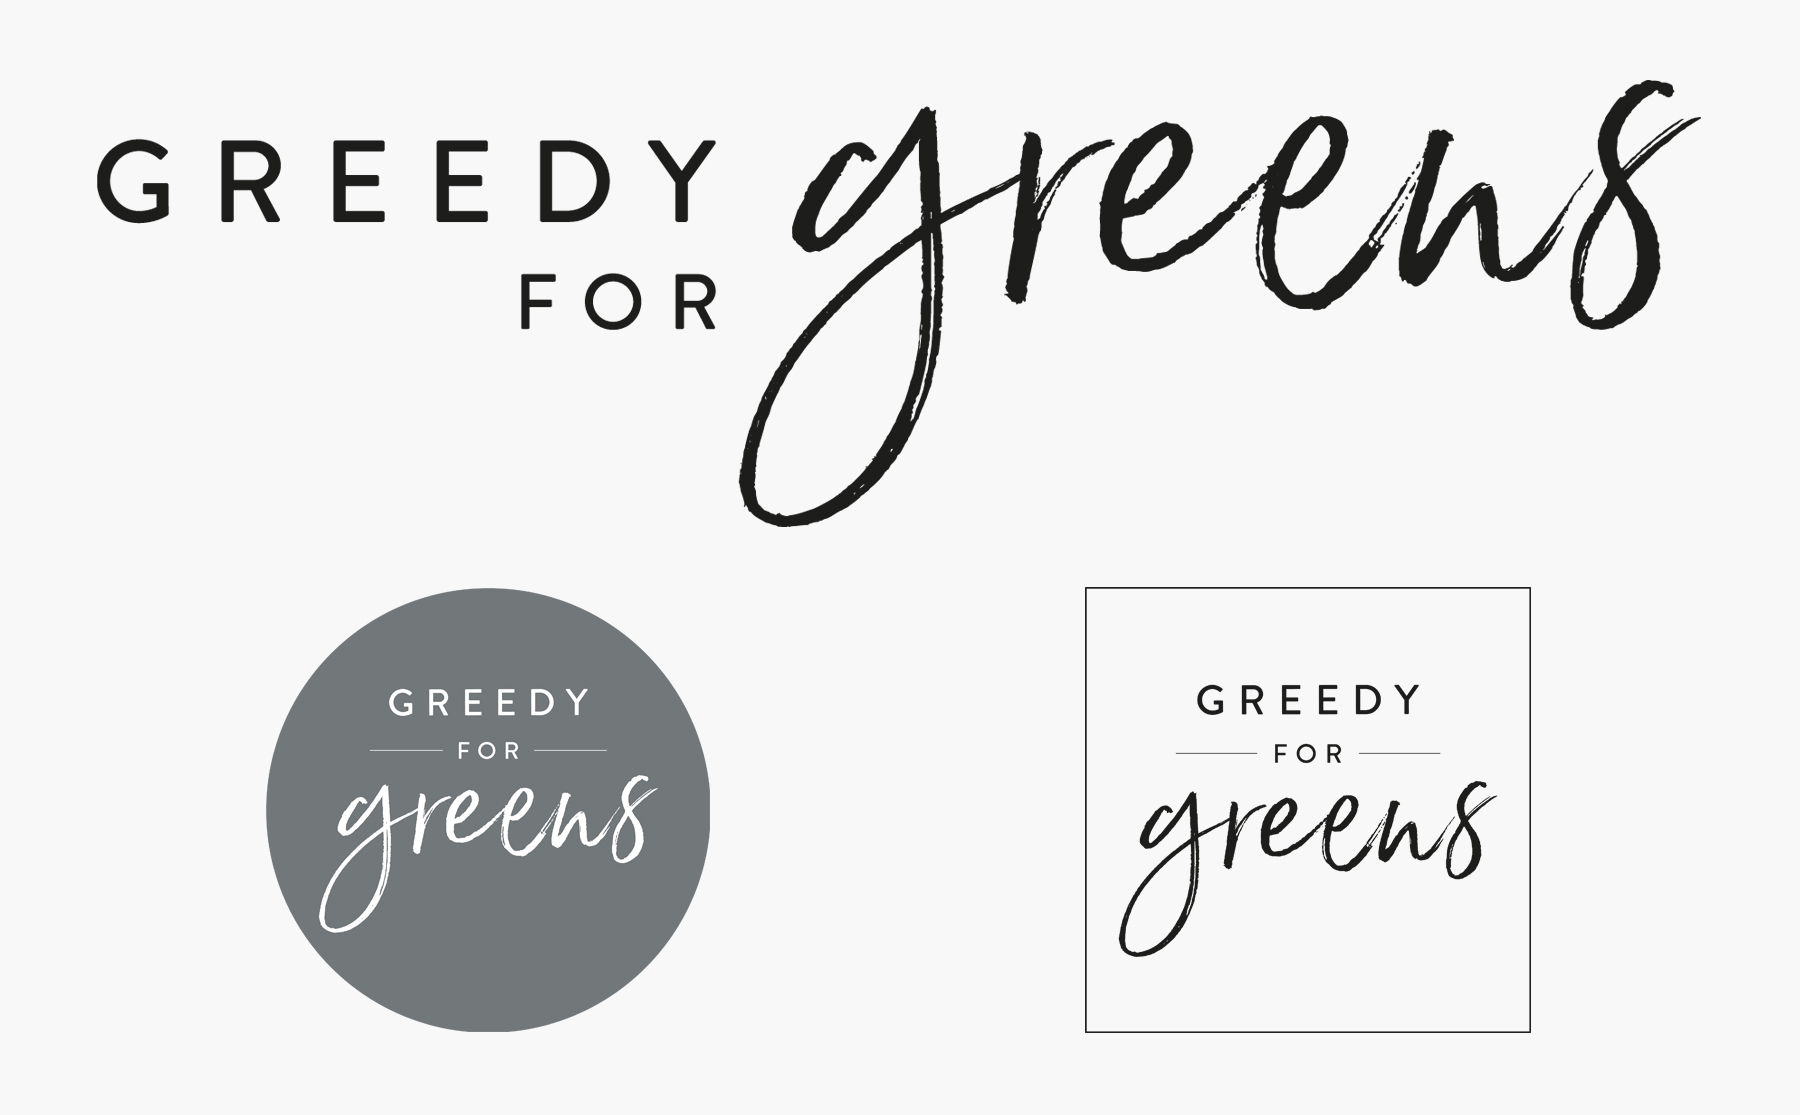 GREEDY FOR GREENS